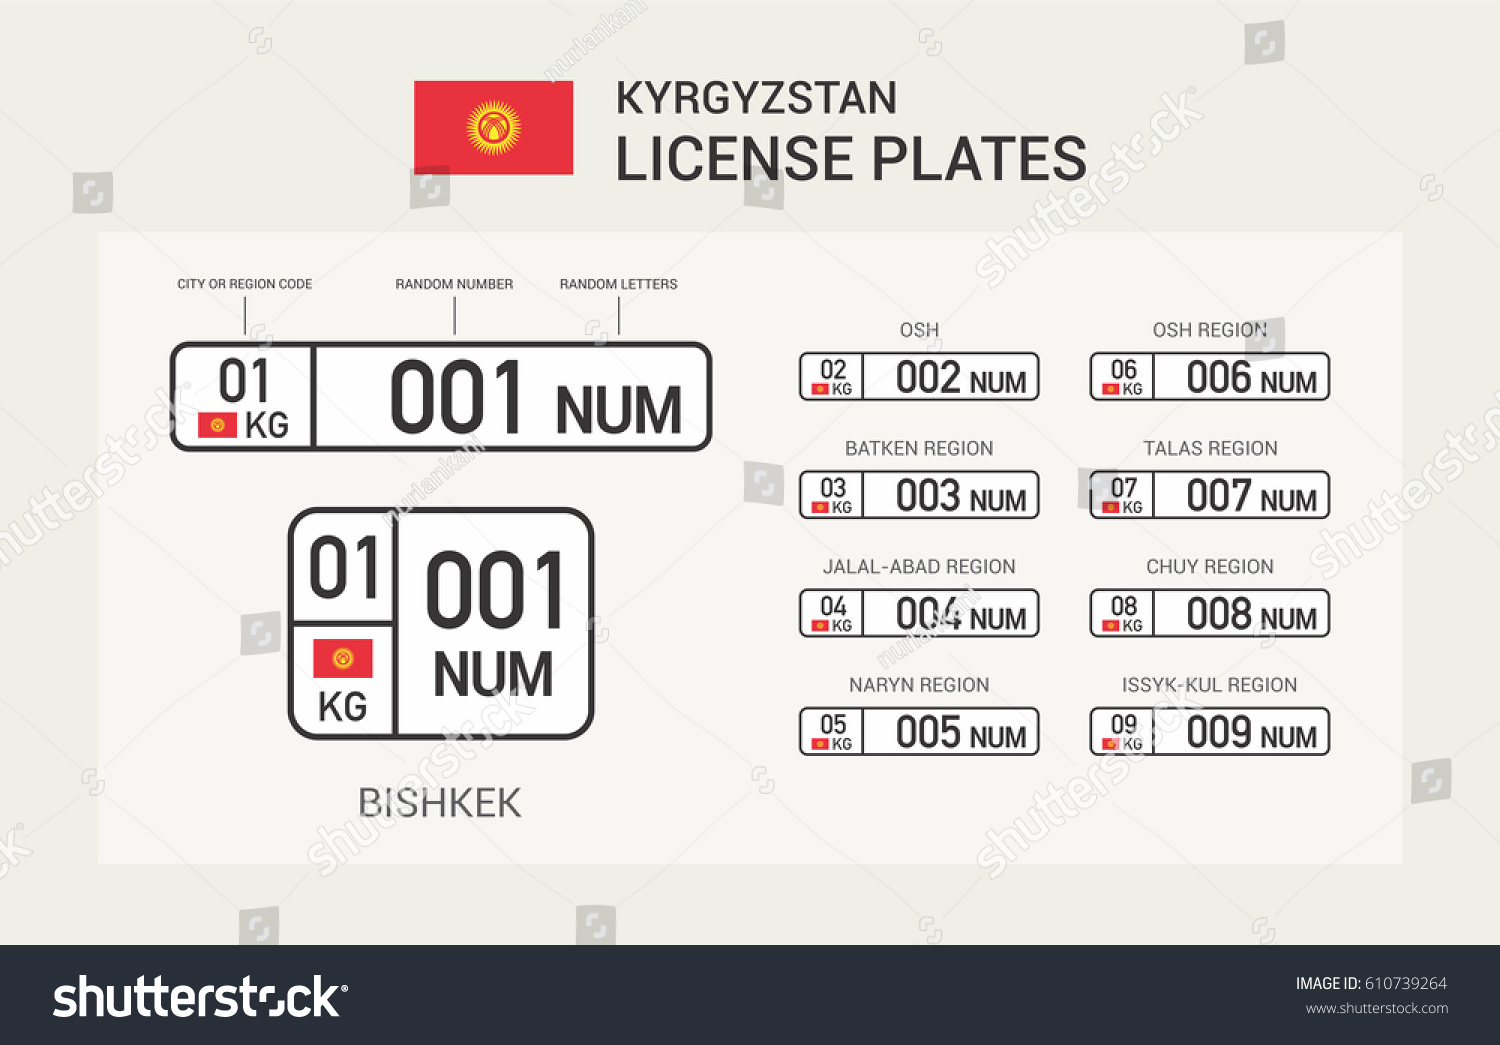 kyrgyzstan license plates template stock vector royalty free